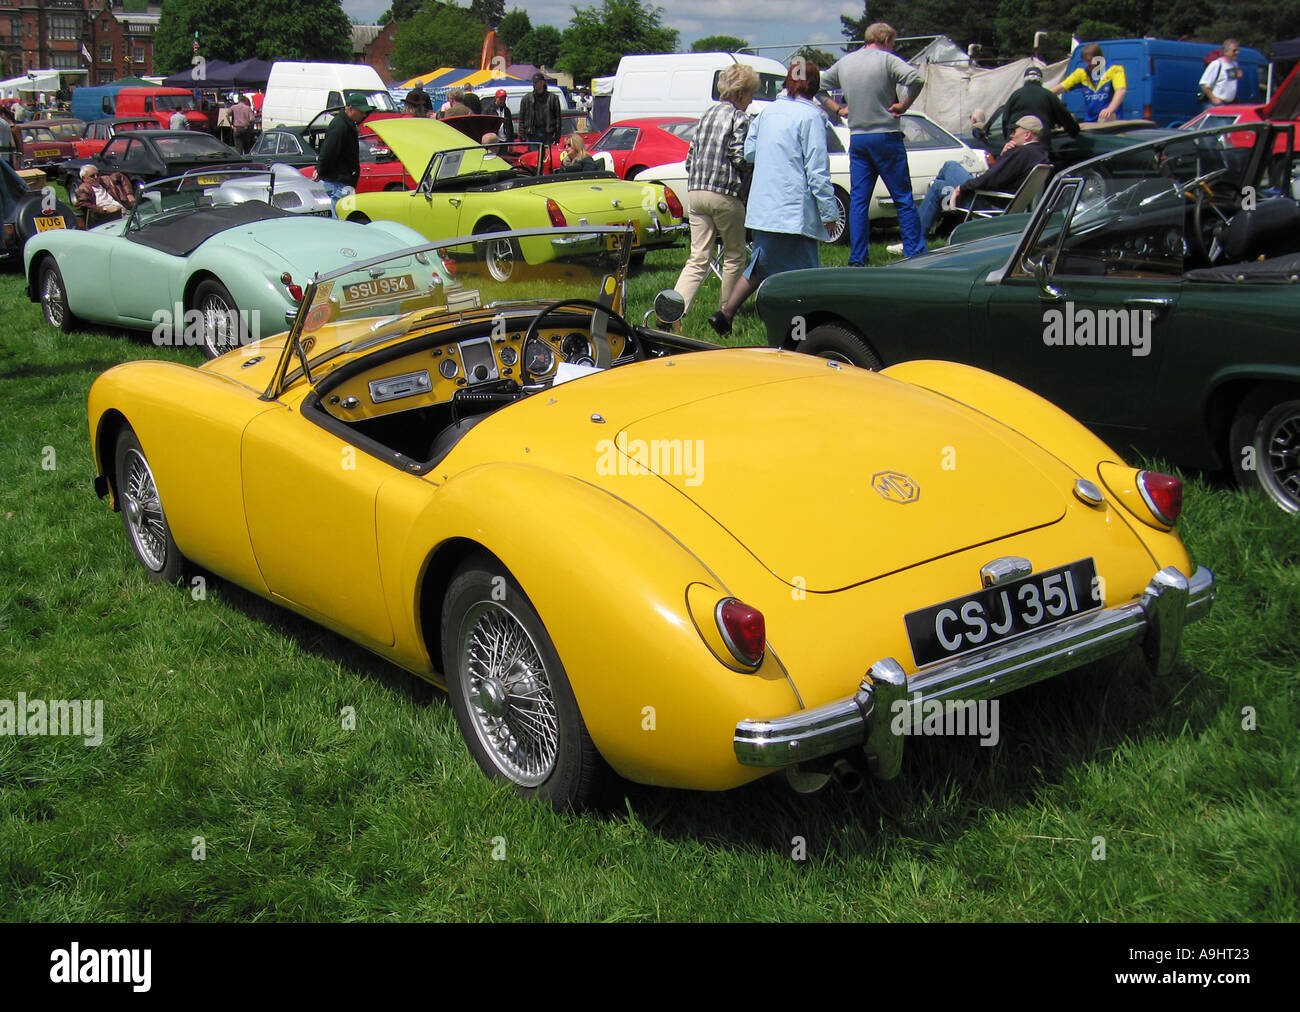 MGA Roadster an der Classic Car Show Capesthorne Hall in Cheshire England vereint Hostessen UK Stockfoto